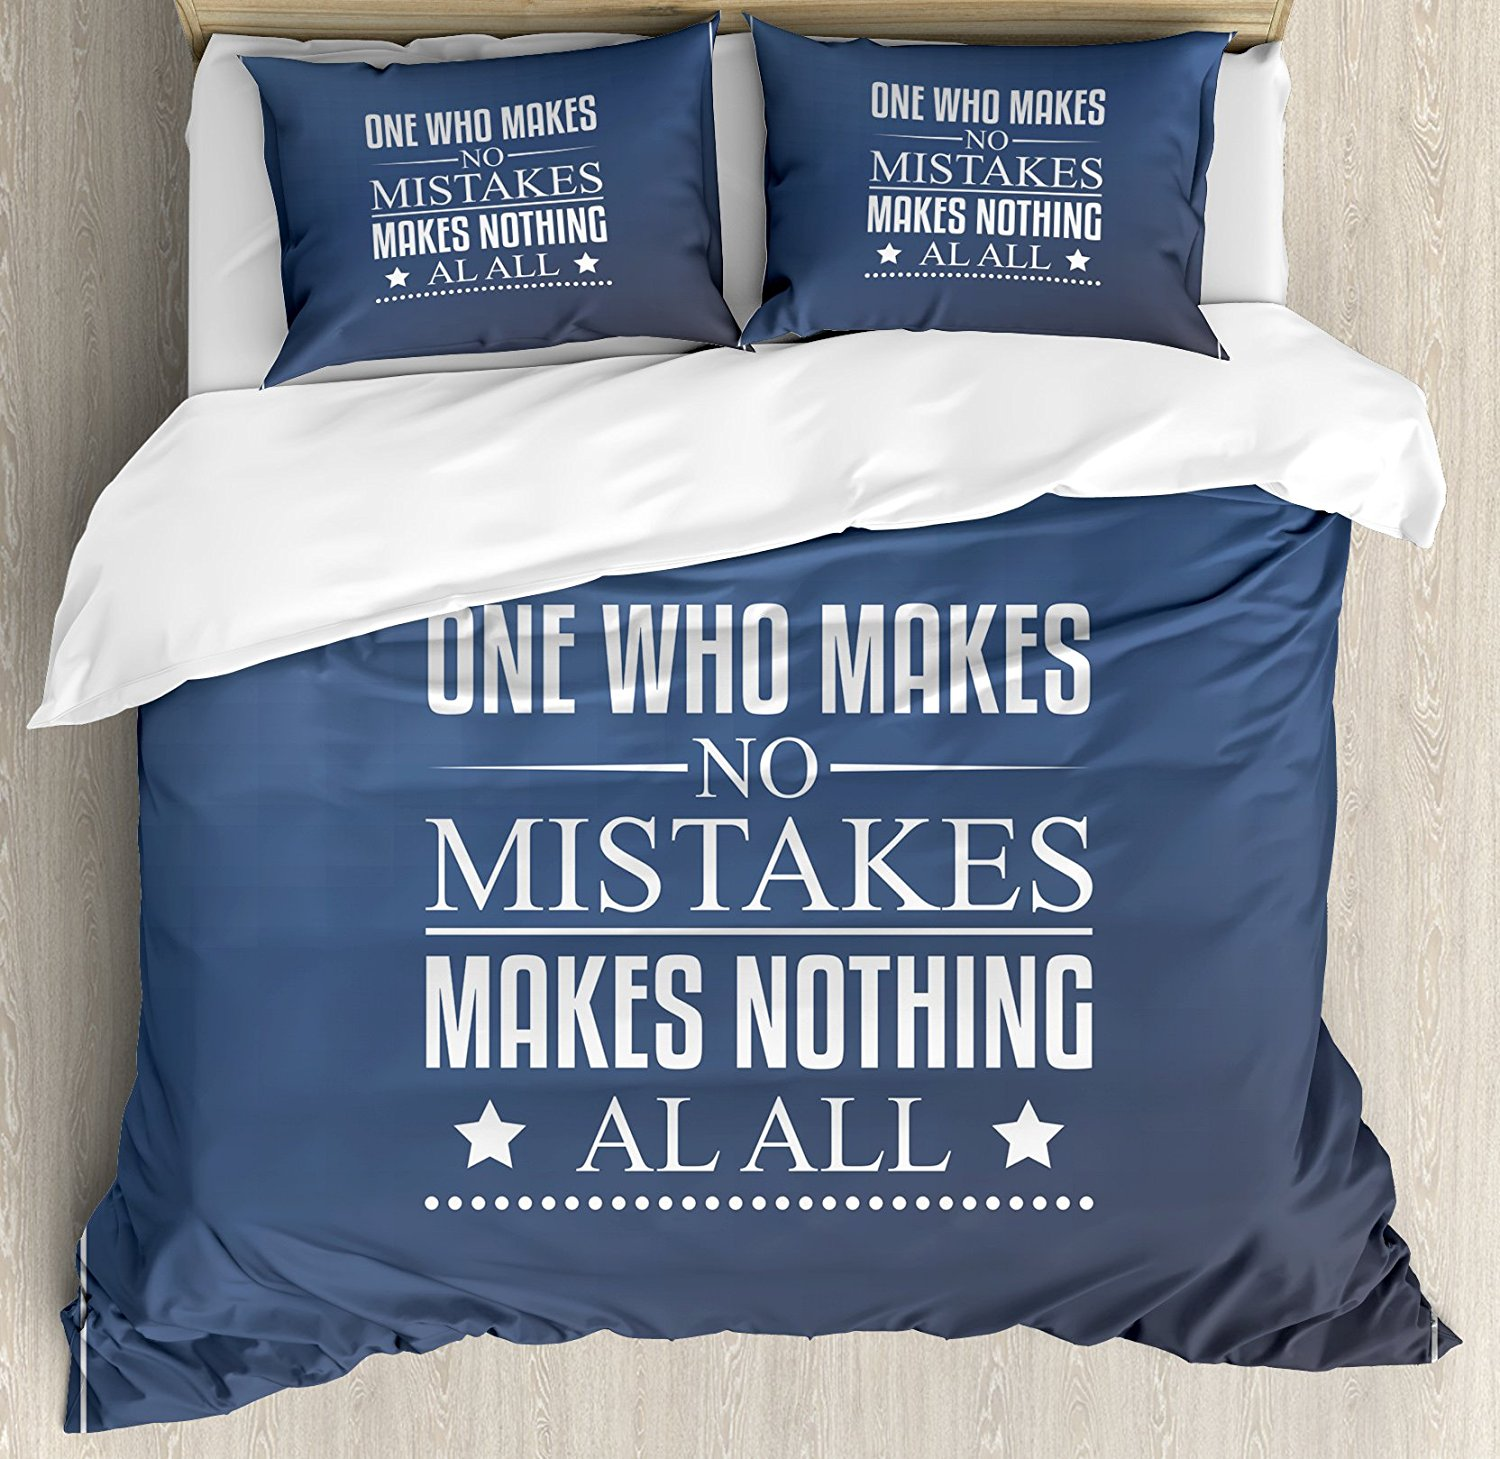 Motivational Duvet Cover Set Wise Words About Learning From Your Mistakes With Vintage Hipster Design 4 Piece Bedding Set